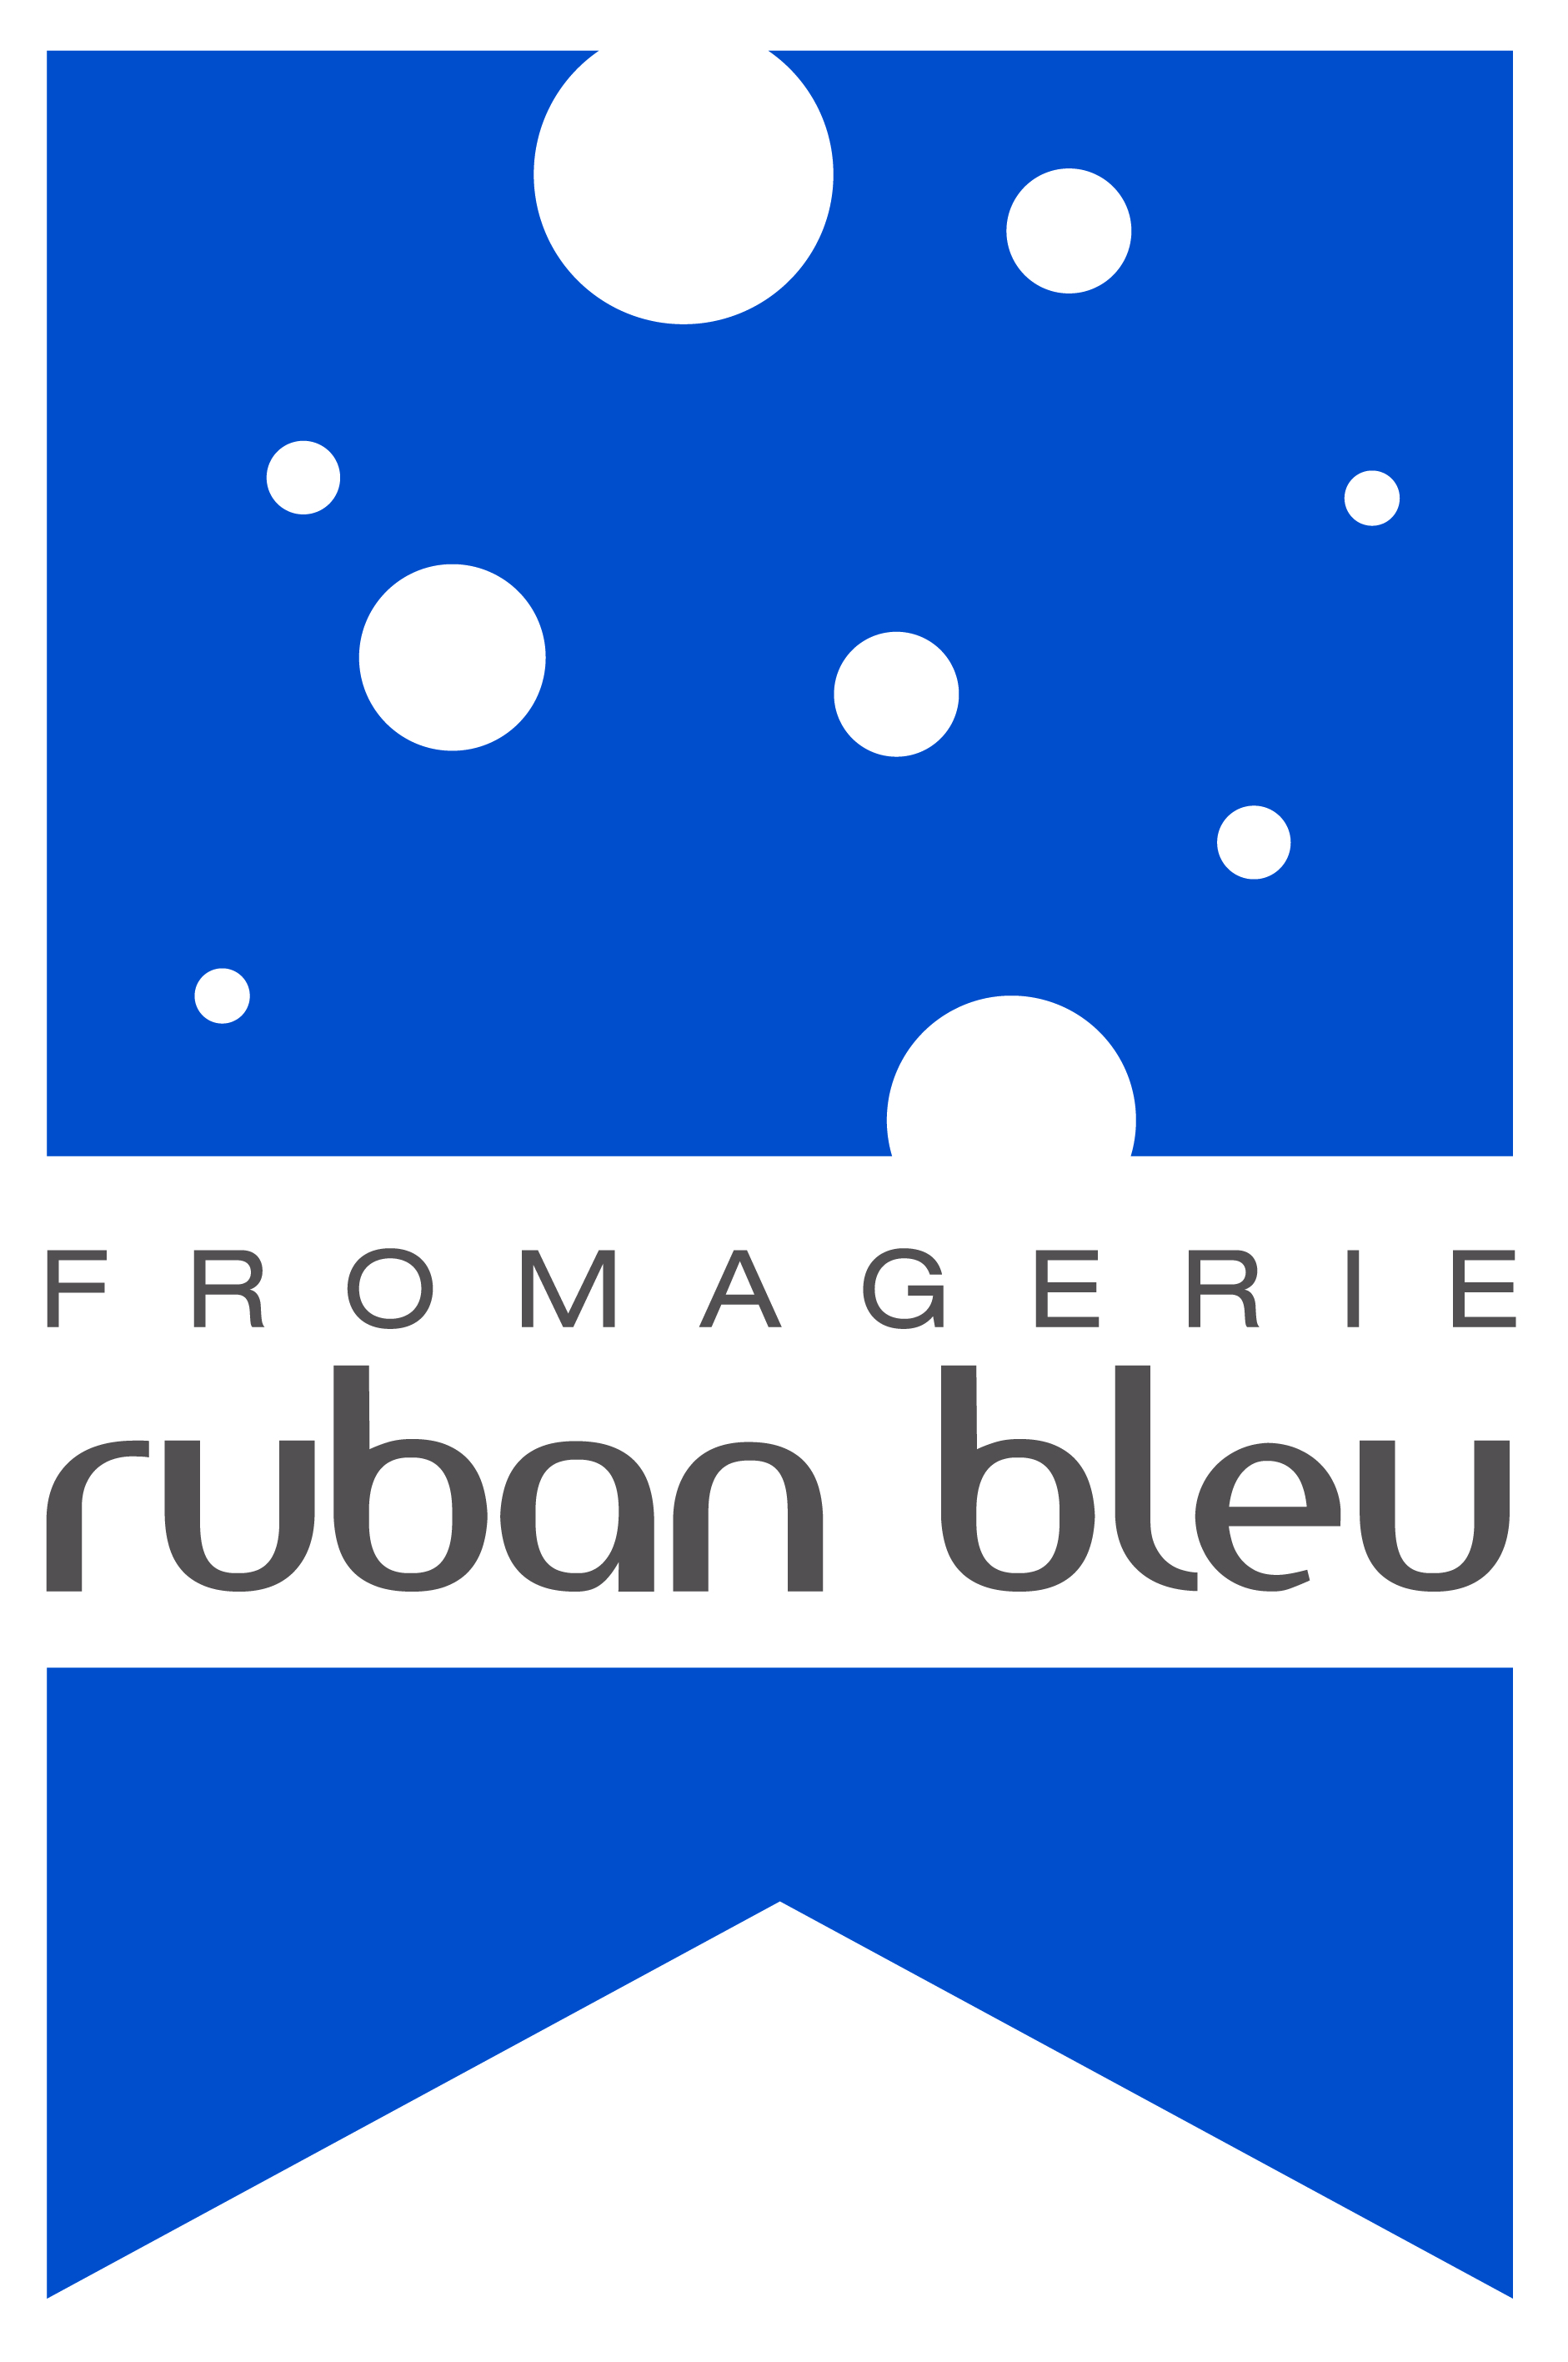 Logo-Ruban-Bleu-FINAL.jpg (1.31 MB)